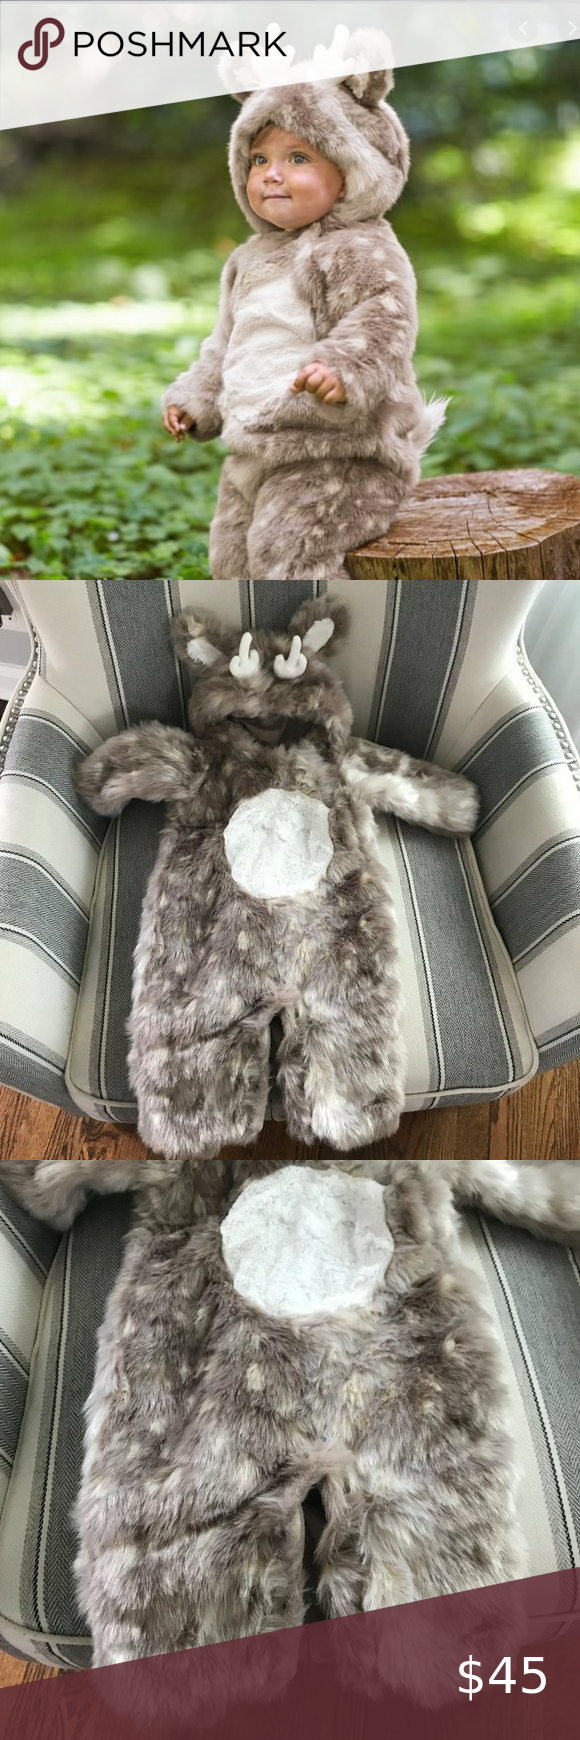 Pottery Barn Kids Baby Deer Costume 06 months in 2020